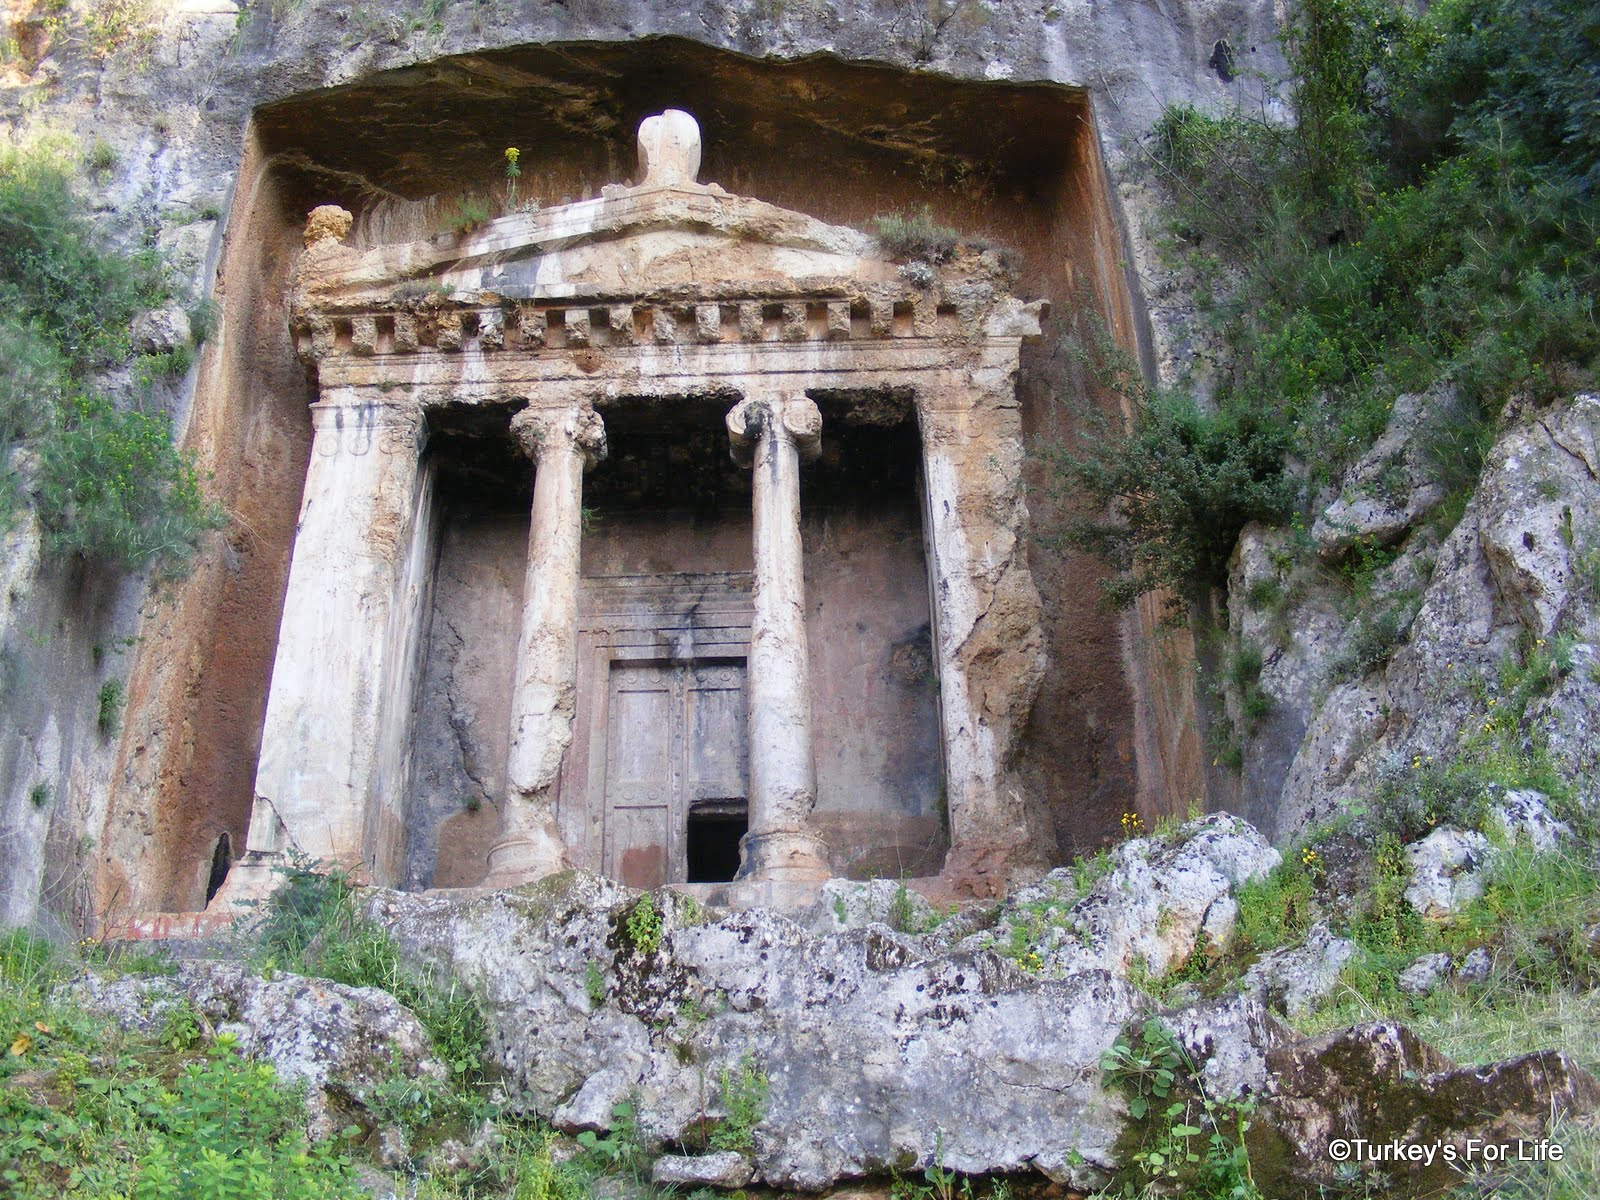 Fethiyes Lycian Rock Tombs • Turkeys For Life